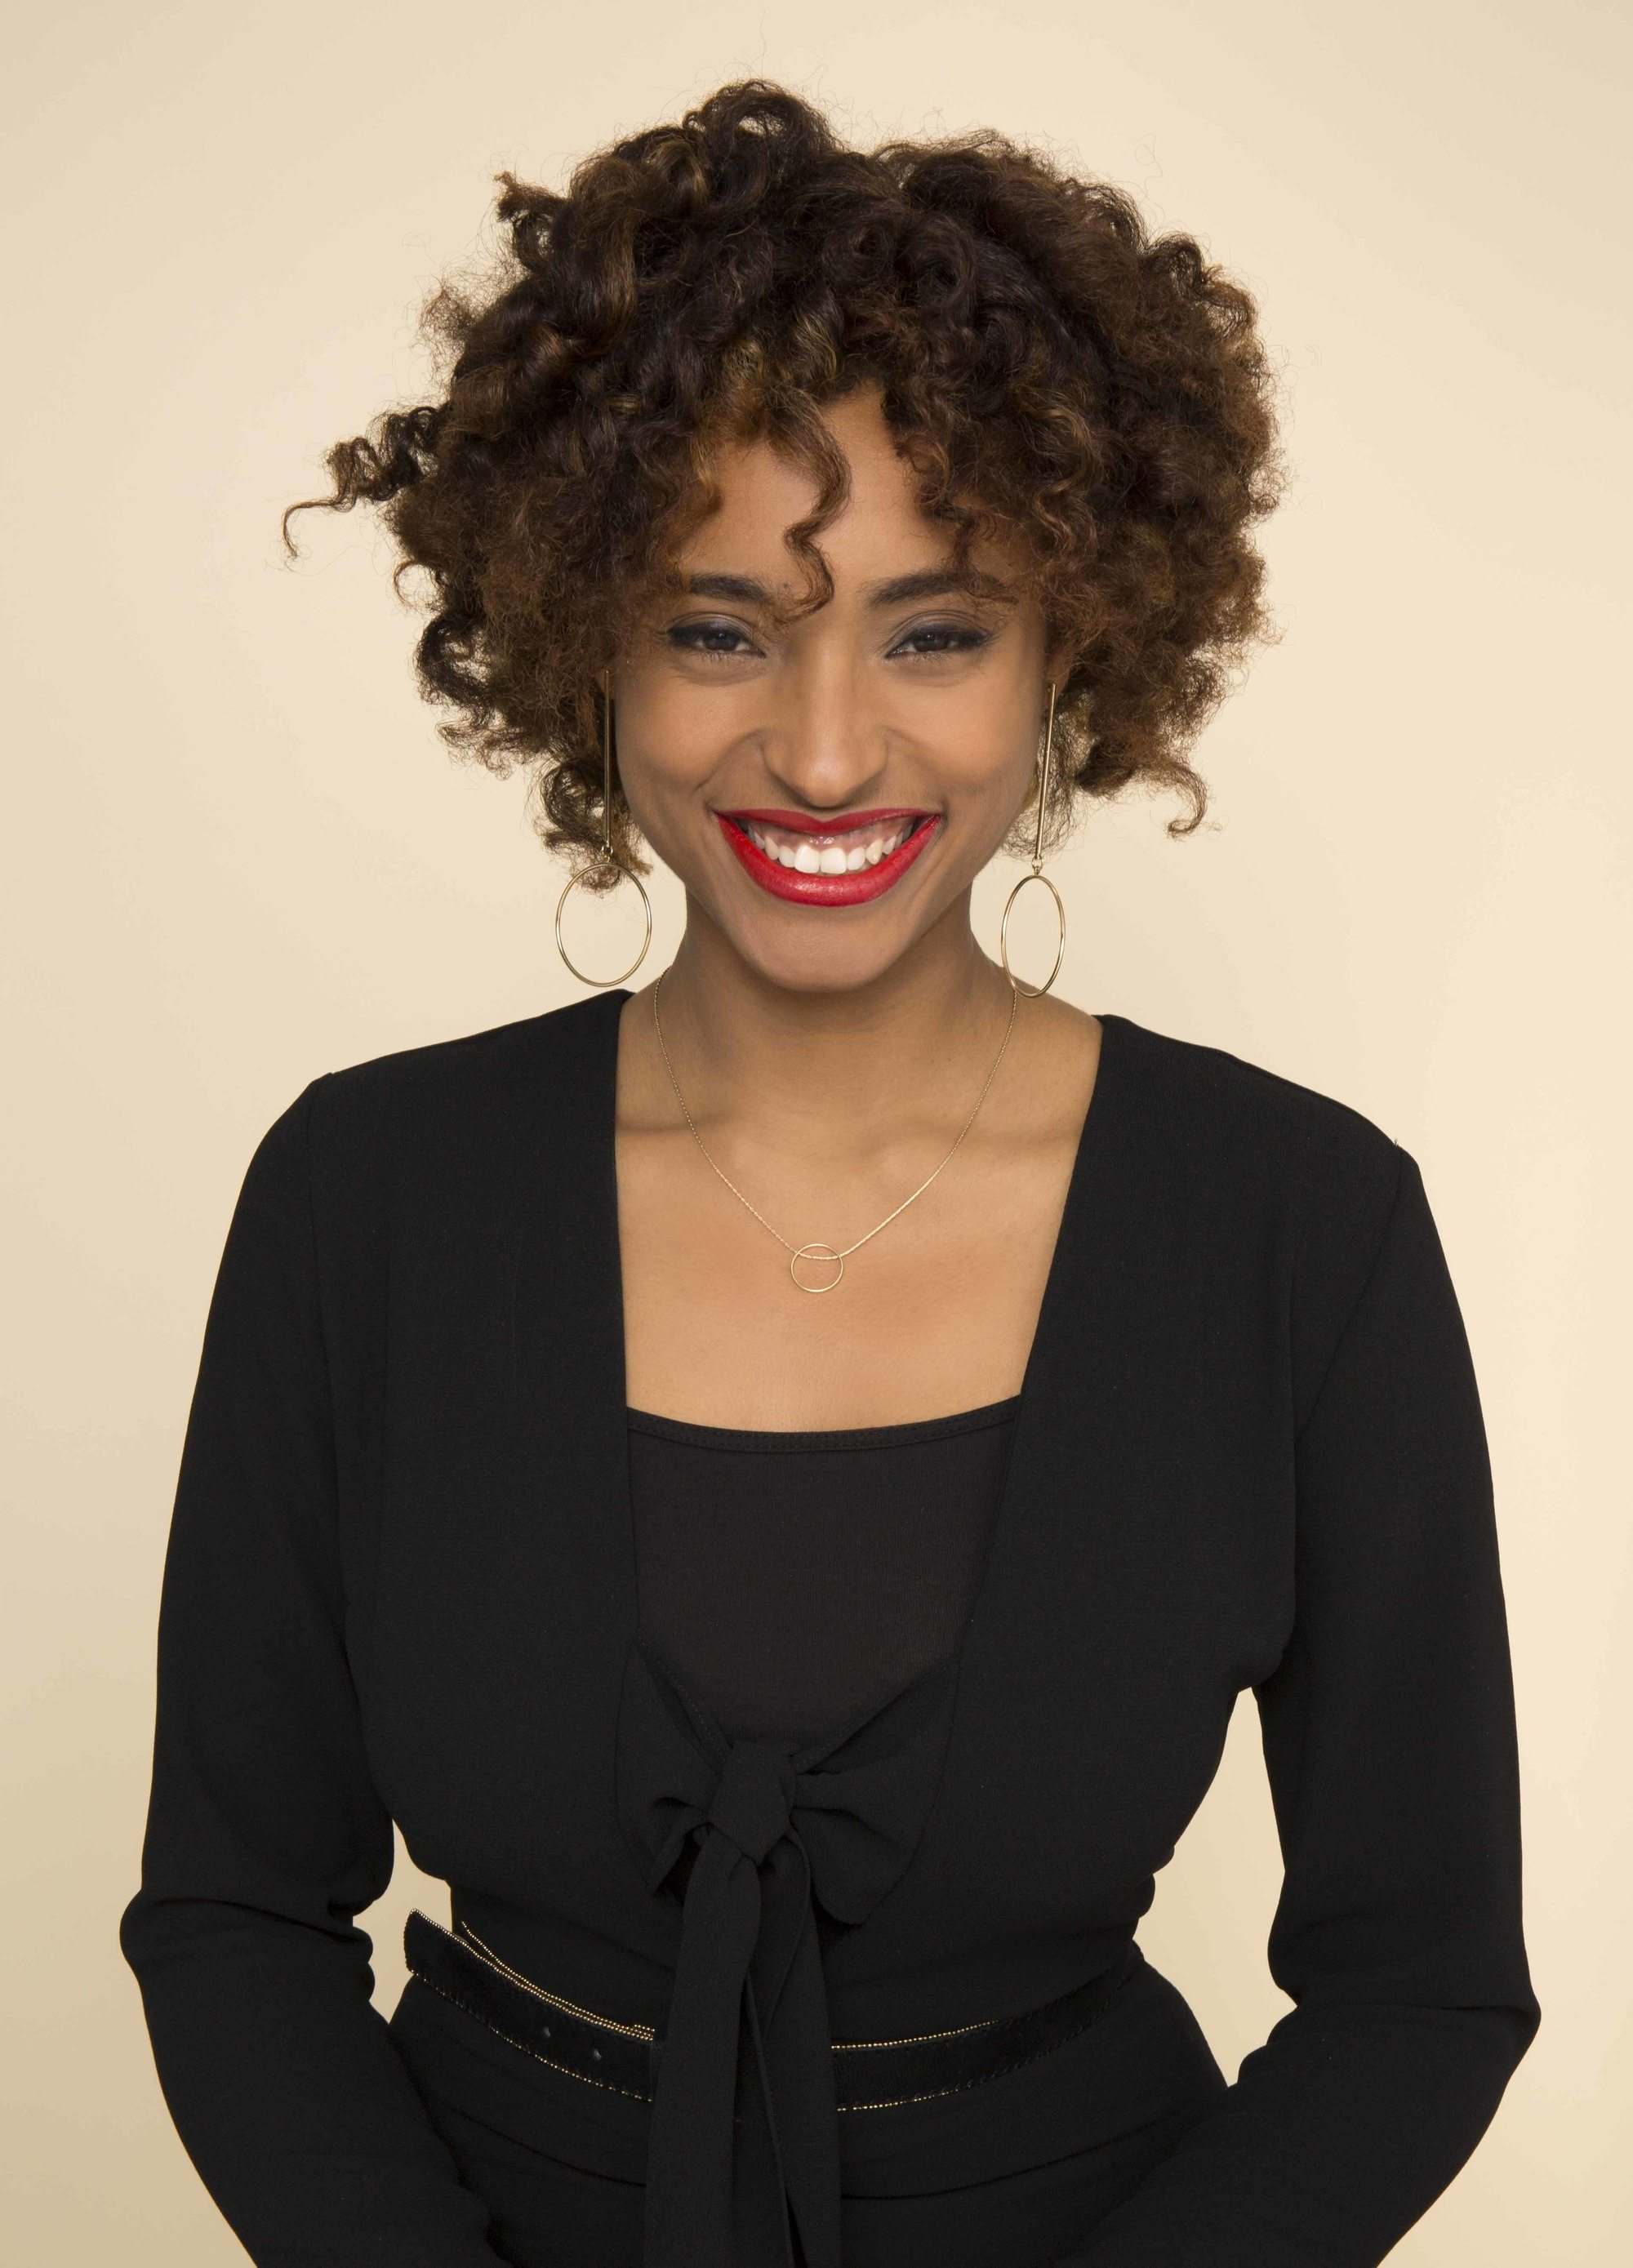 Natural haired model with curly afro